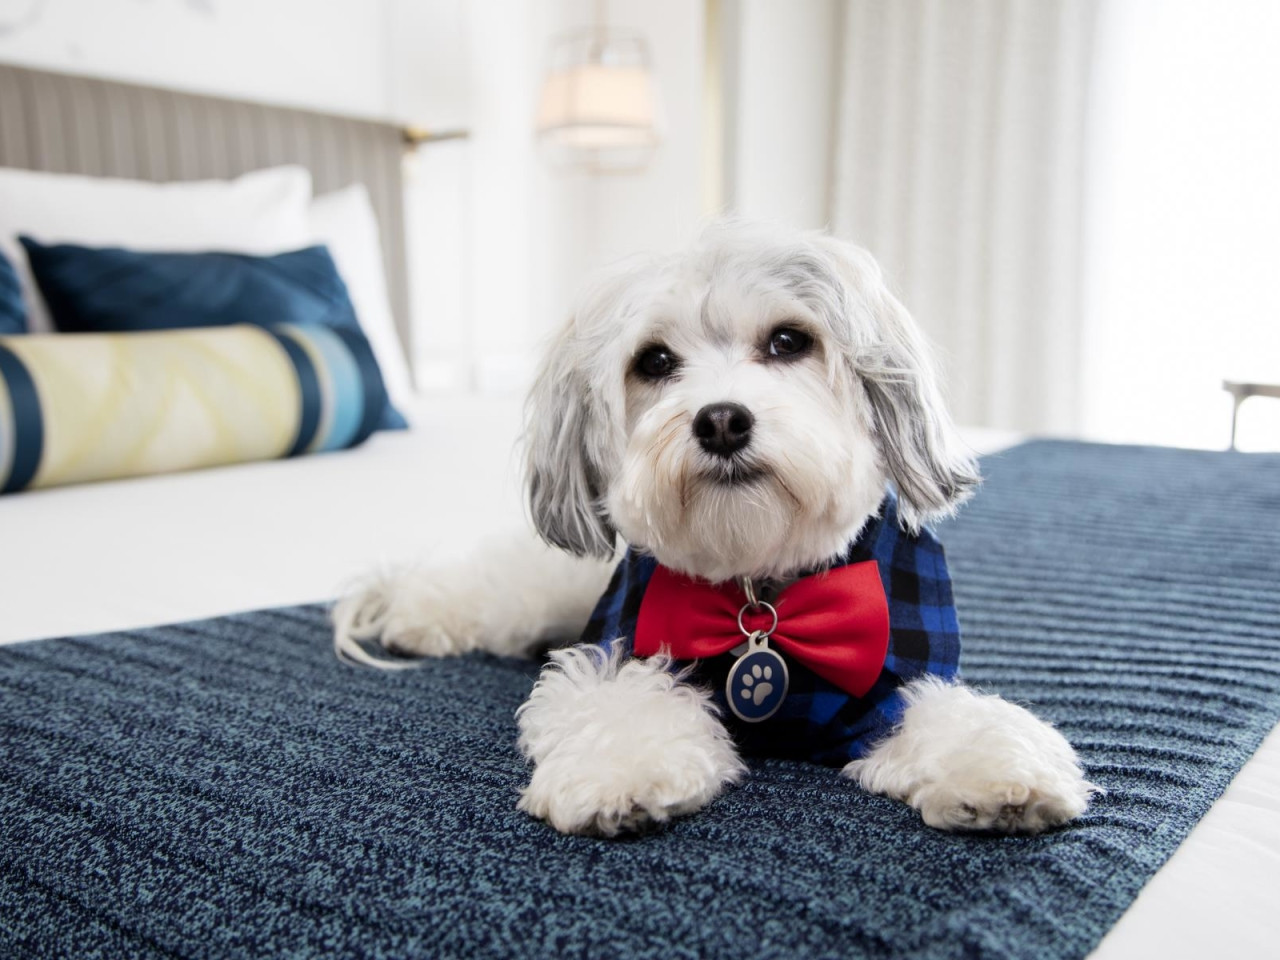 Hotel Pet Friendly che accettano animali a Parigi - Parigi.it